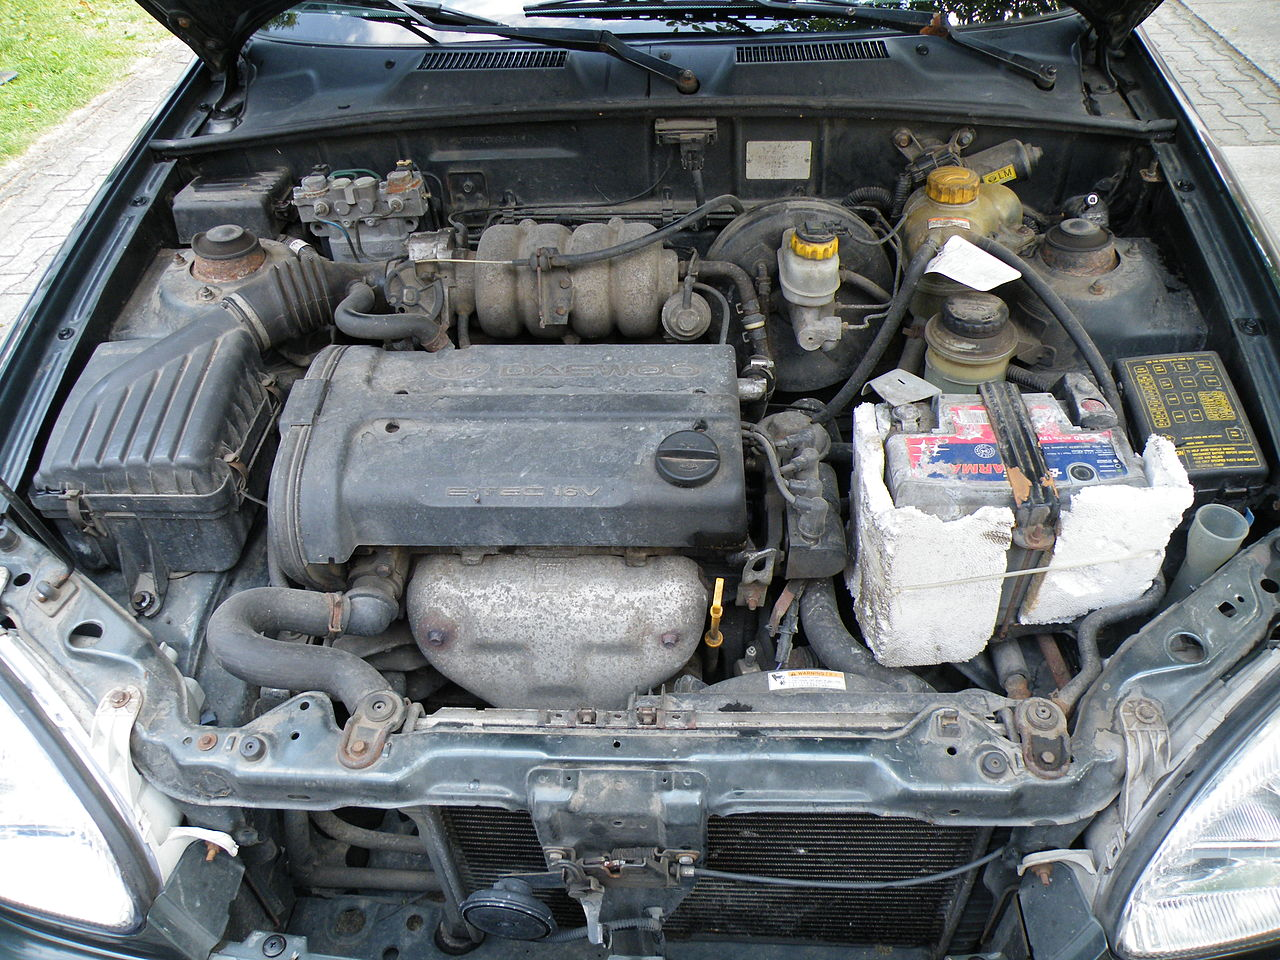 File Gm E Tec 1 5 16v Dohc Engine In Daewoo Lanos Jpg